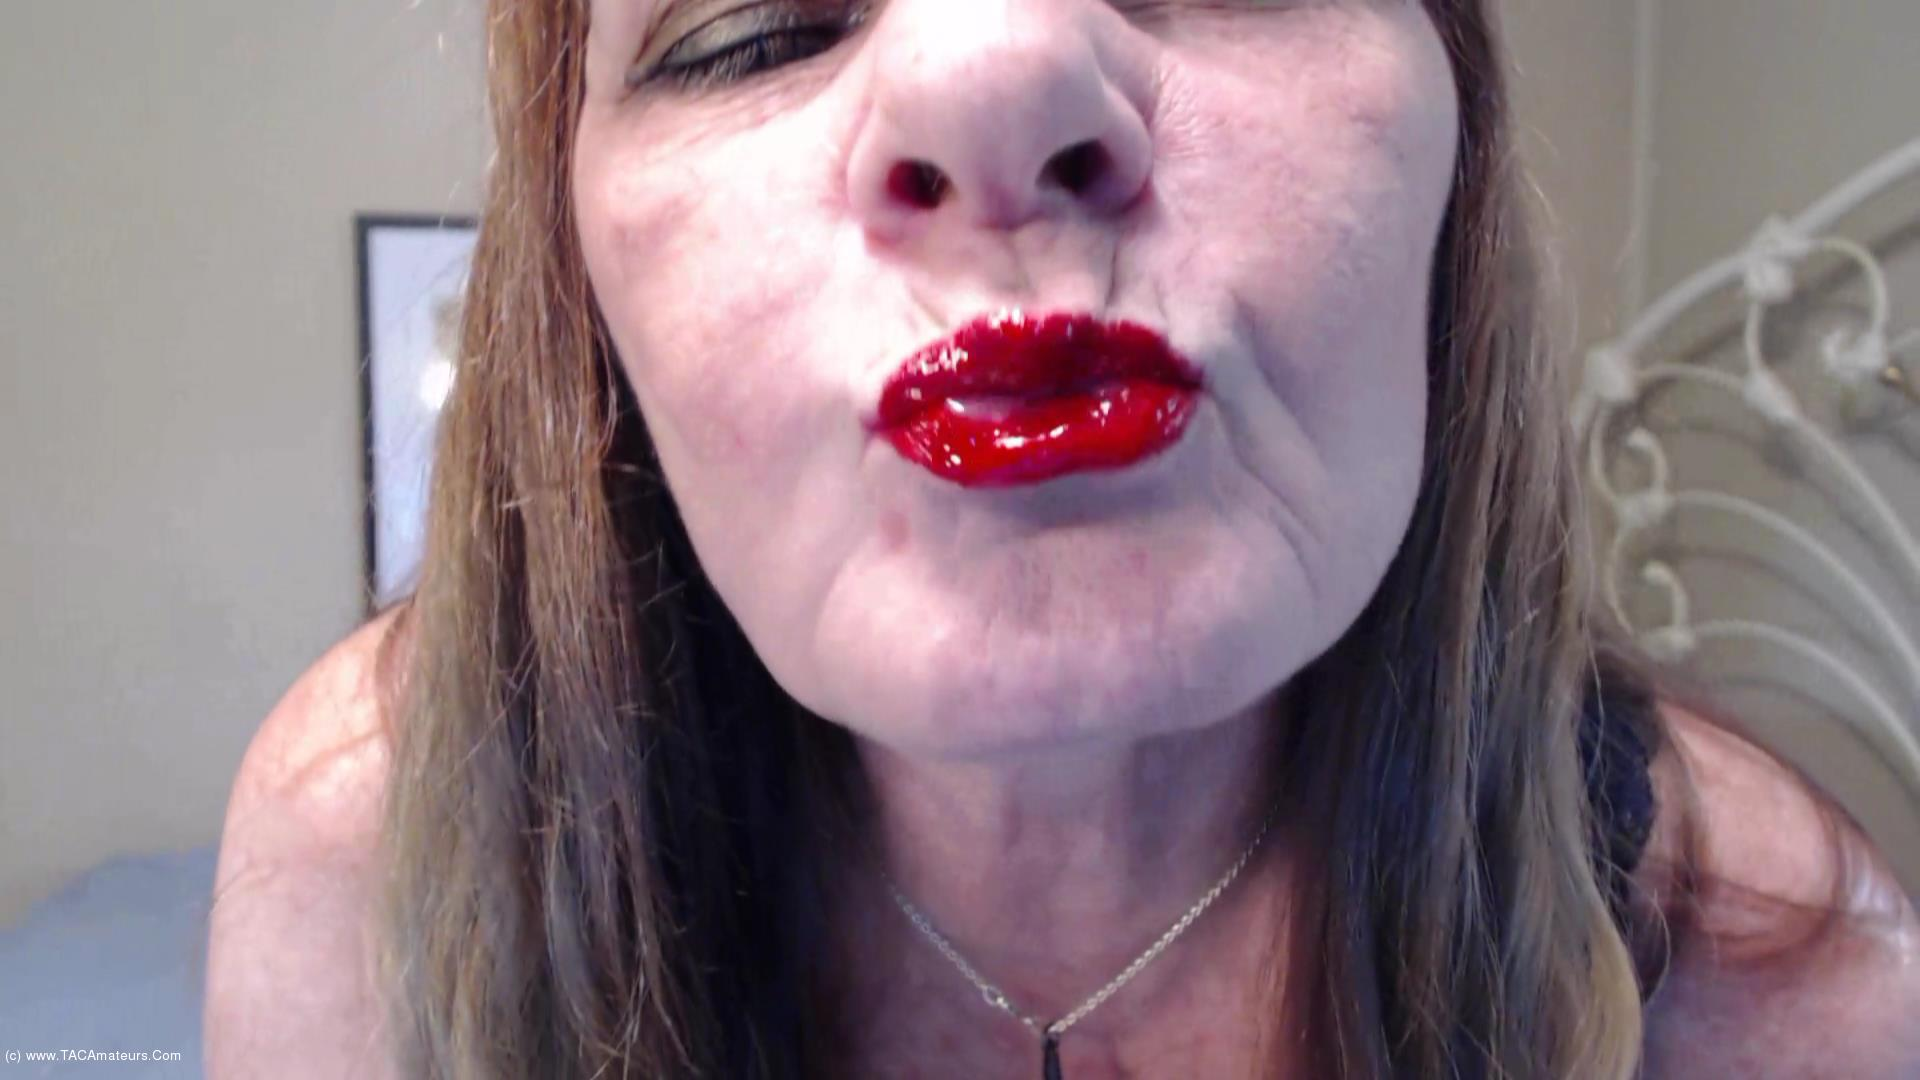 CougarBabeJolee - Red Shiny Lips Teasing You scene 3